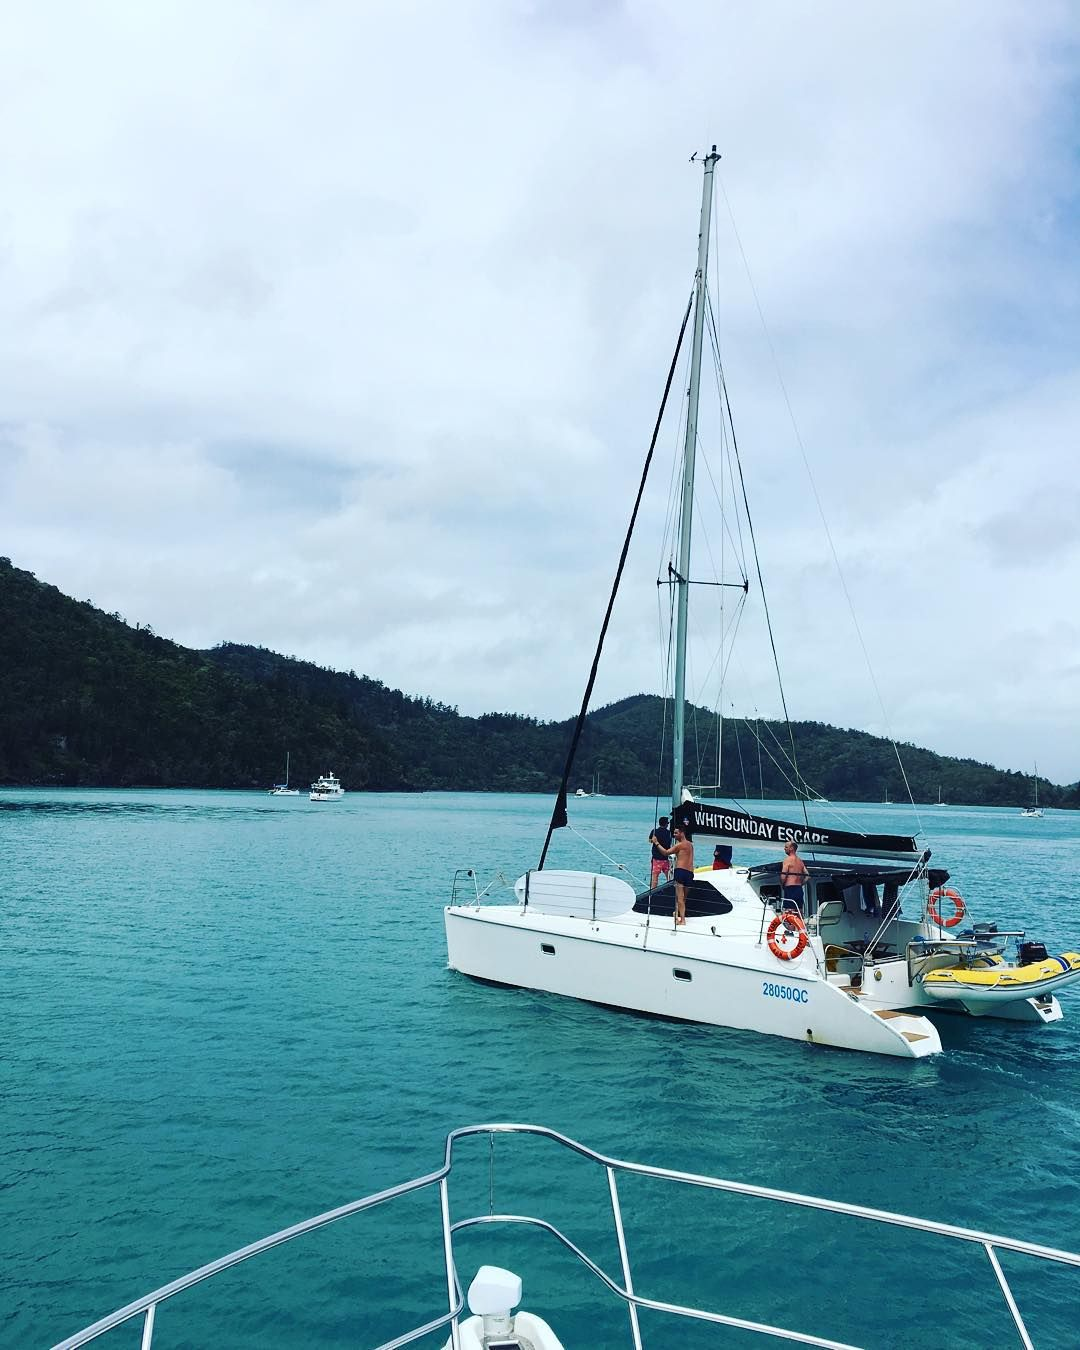 Just enjoying the boating life last Saturday in the Whiteundays. #travel #instatravel #travelgram #australia #wanderlust #hashtag #sun #loveaustralia #worldtravelpics #explore  #qld #queensland #islandlife #hamiltonisland #whitsundays #cruise #bliss